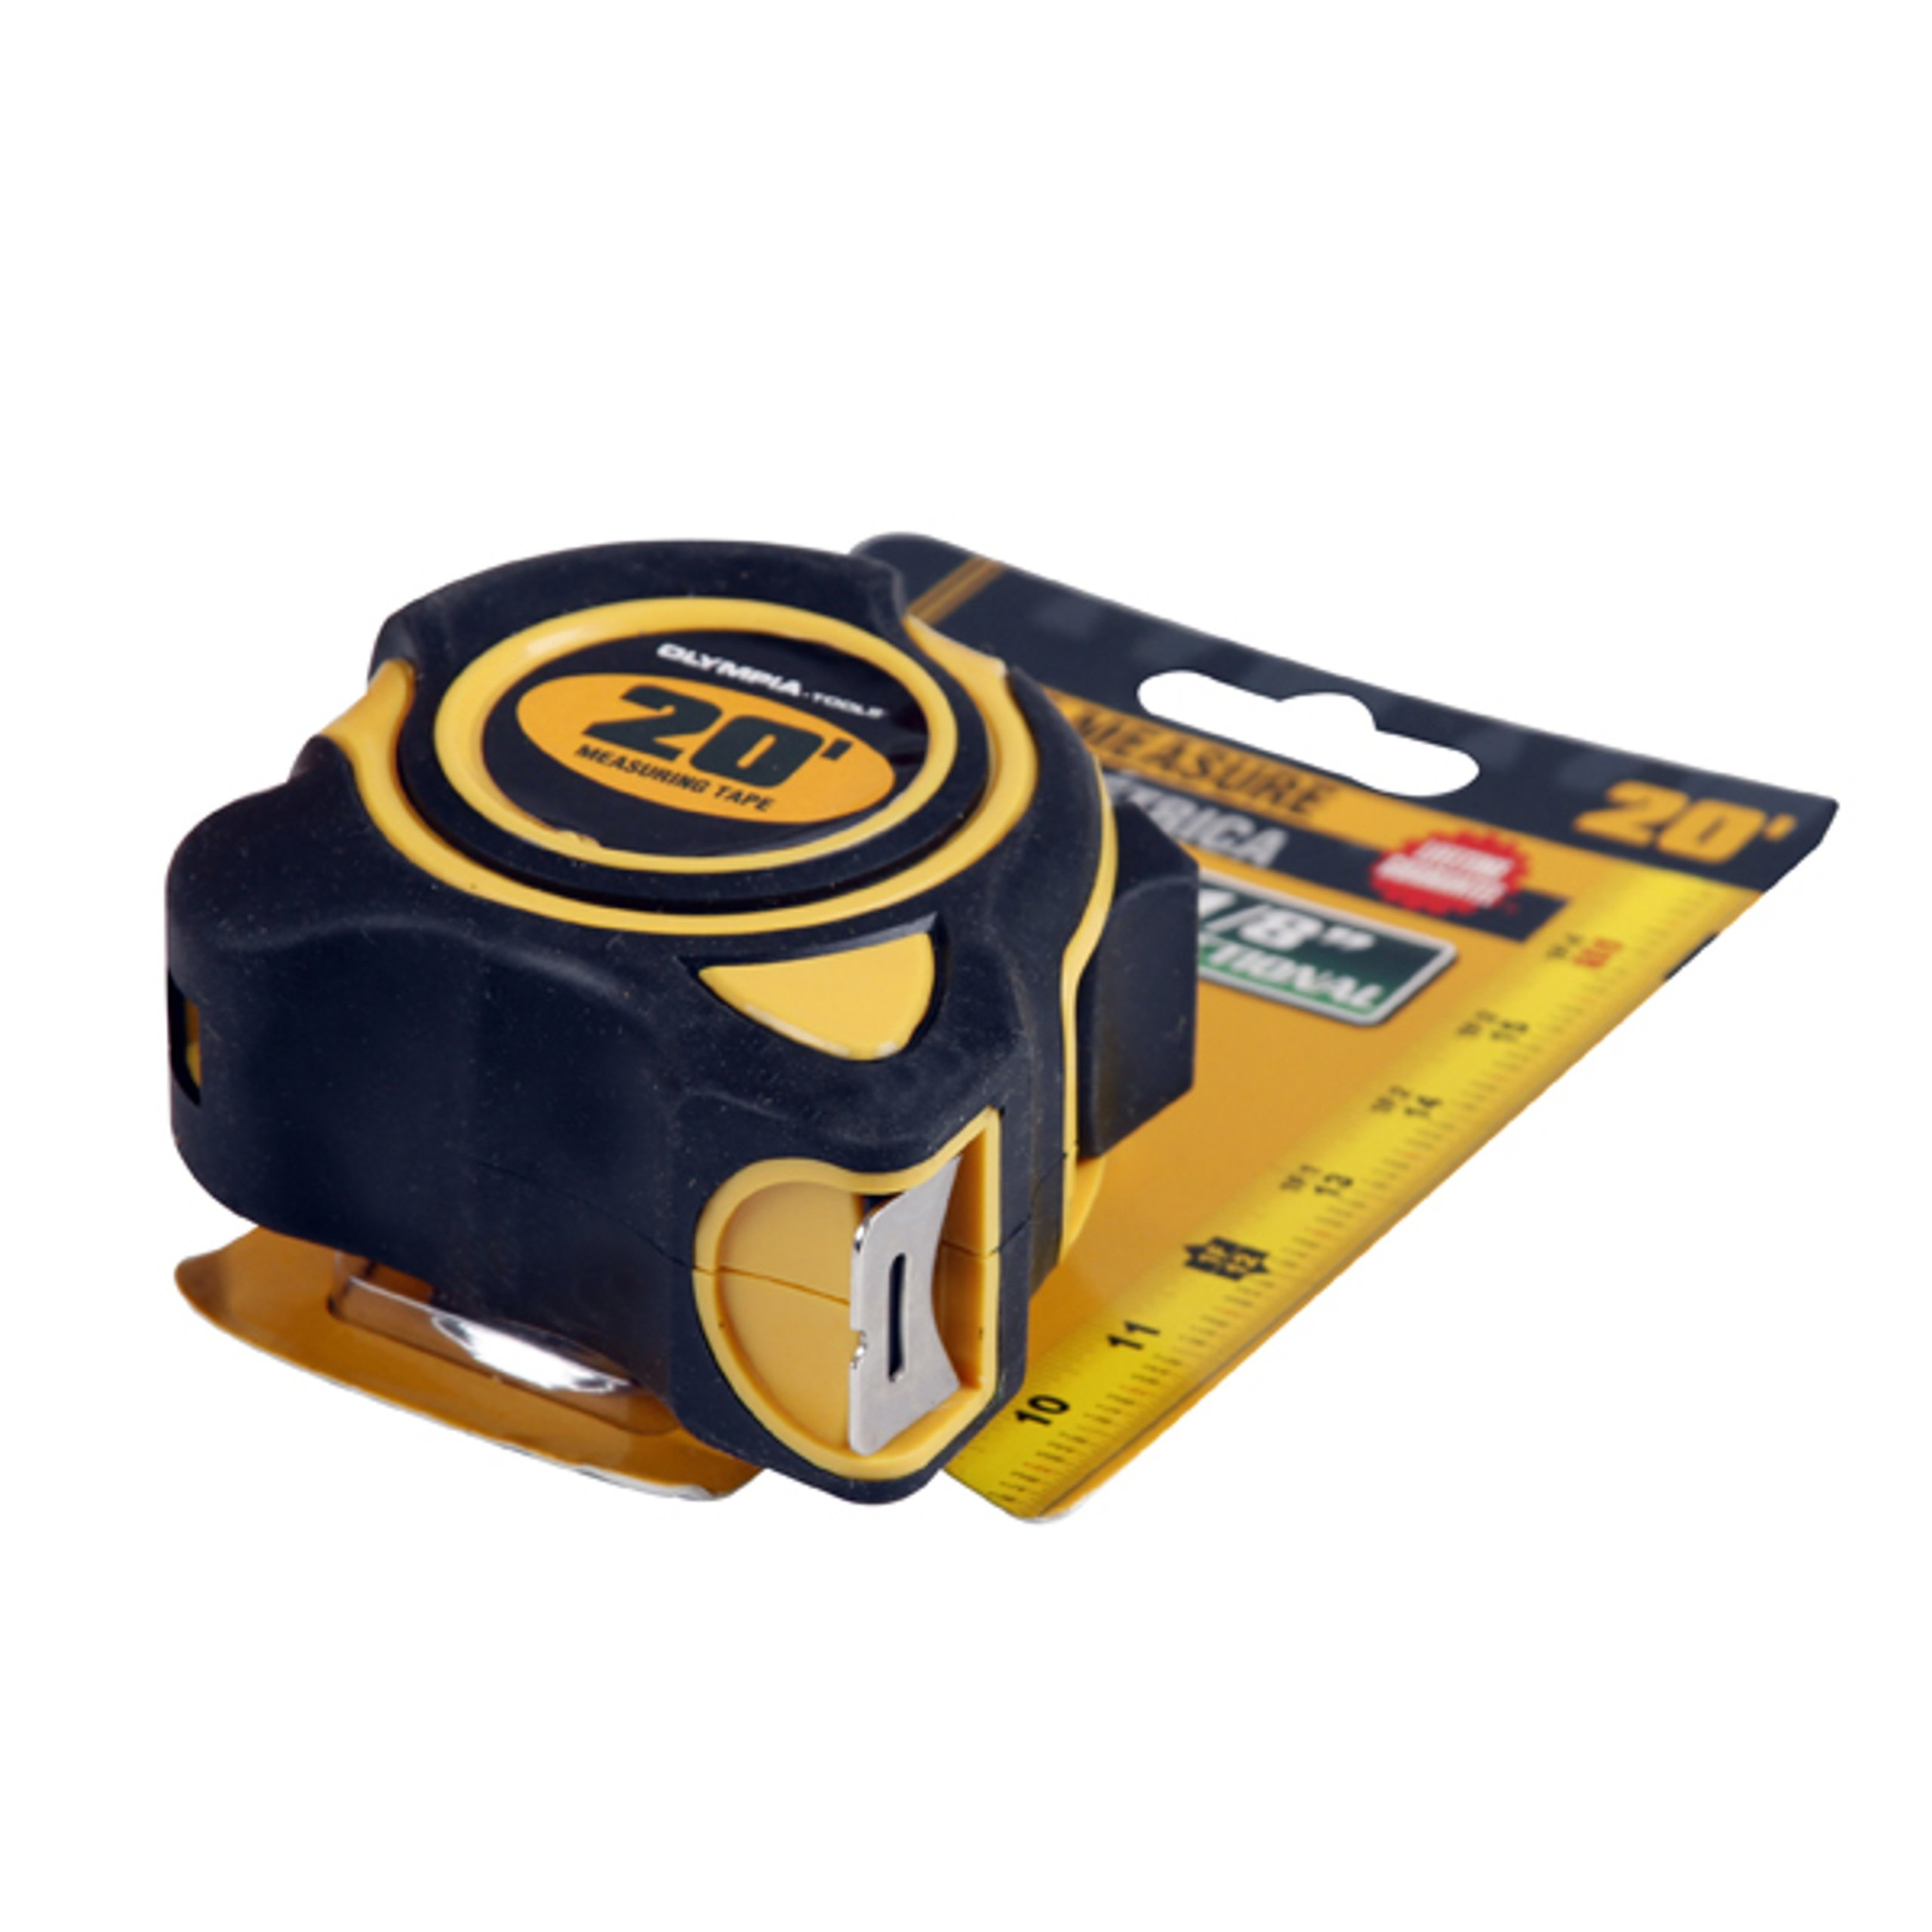 Olympia Tools 43-233 1-Inch by 20-Feet Tape Measure SAE